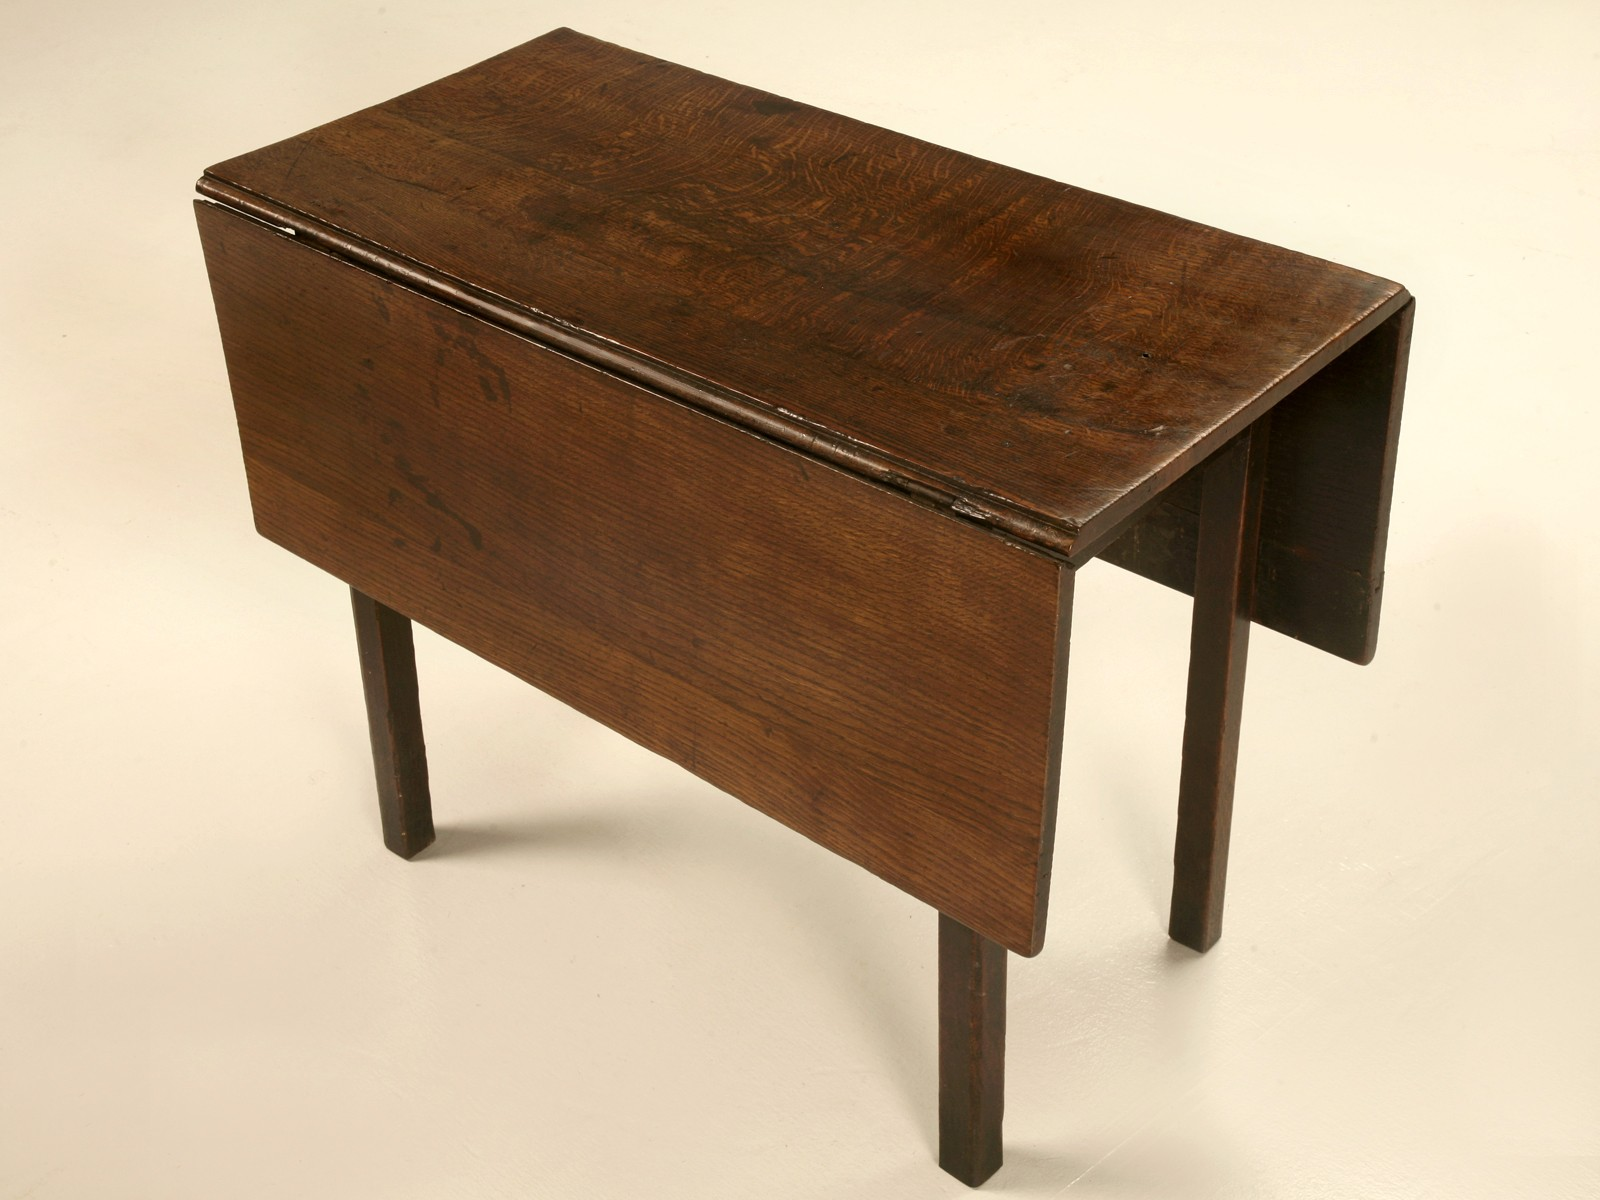 Image of: antique drop leaf table